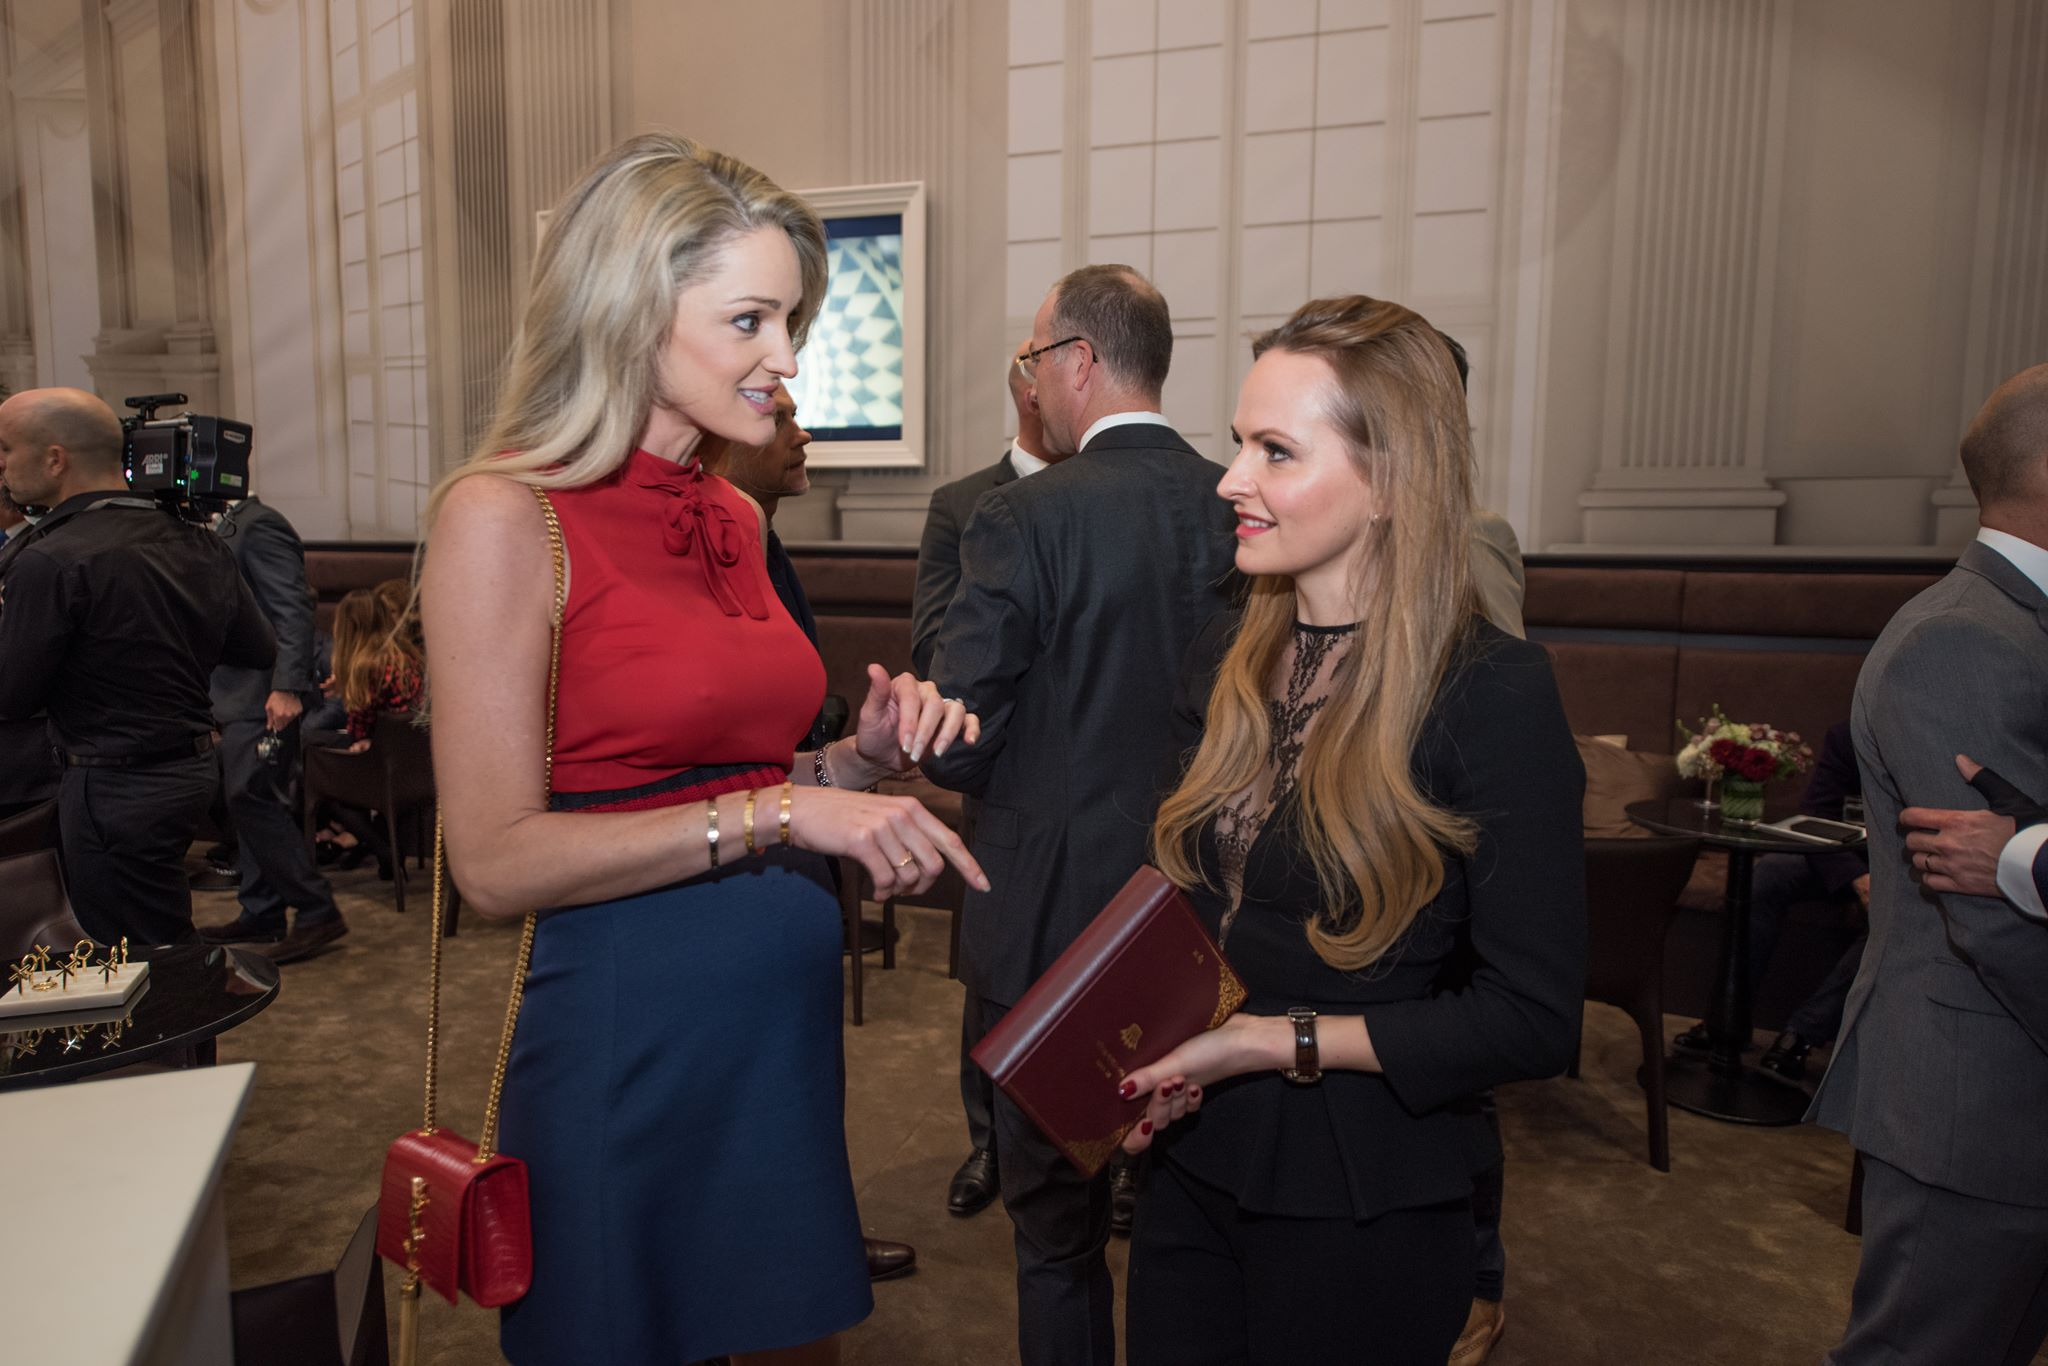 Storm Keating and Nel-Olivia Waga at SIHH 2017 IWC Da Vinci